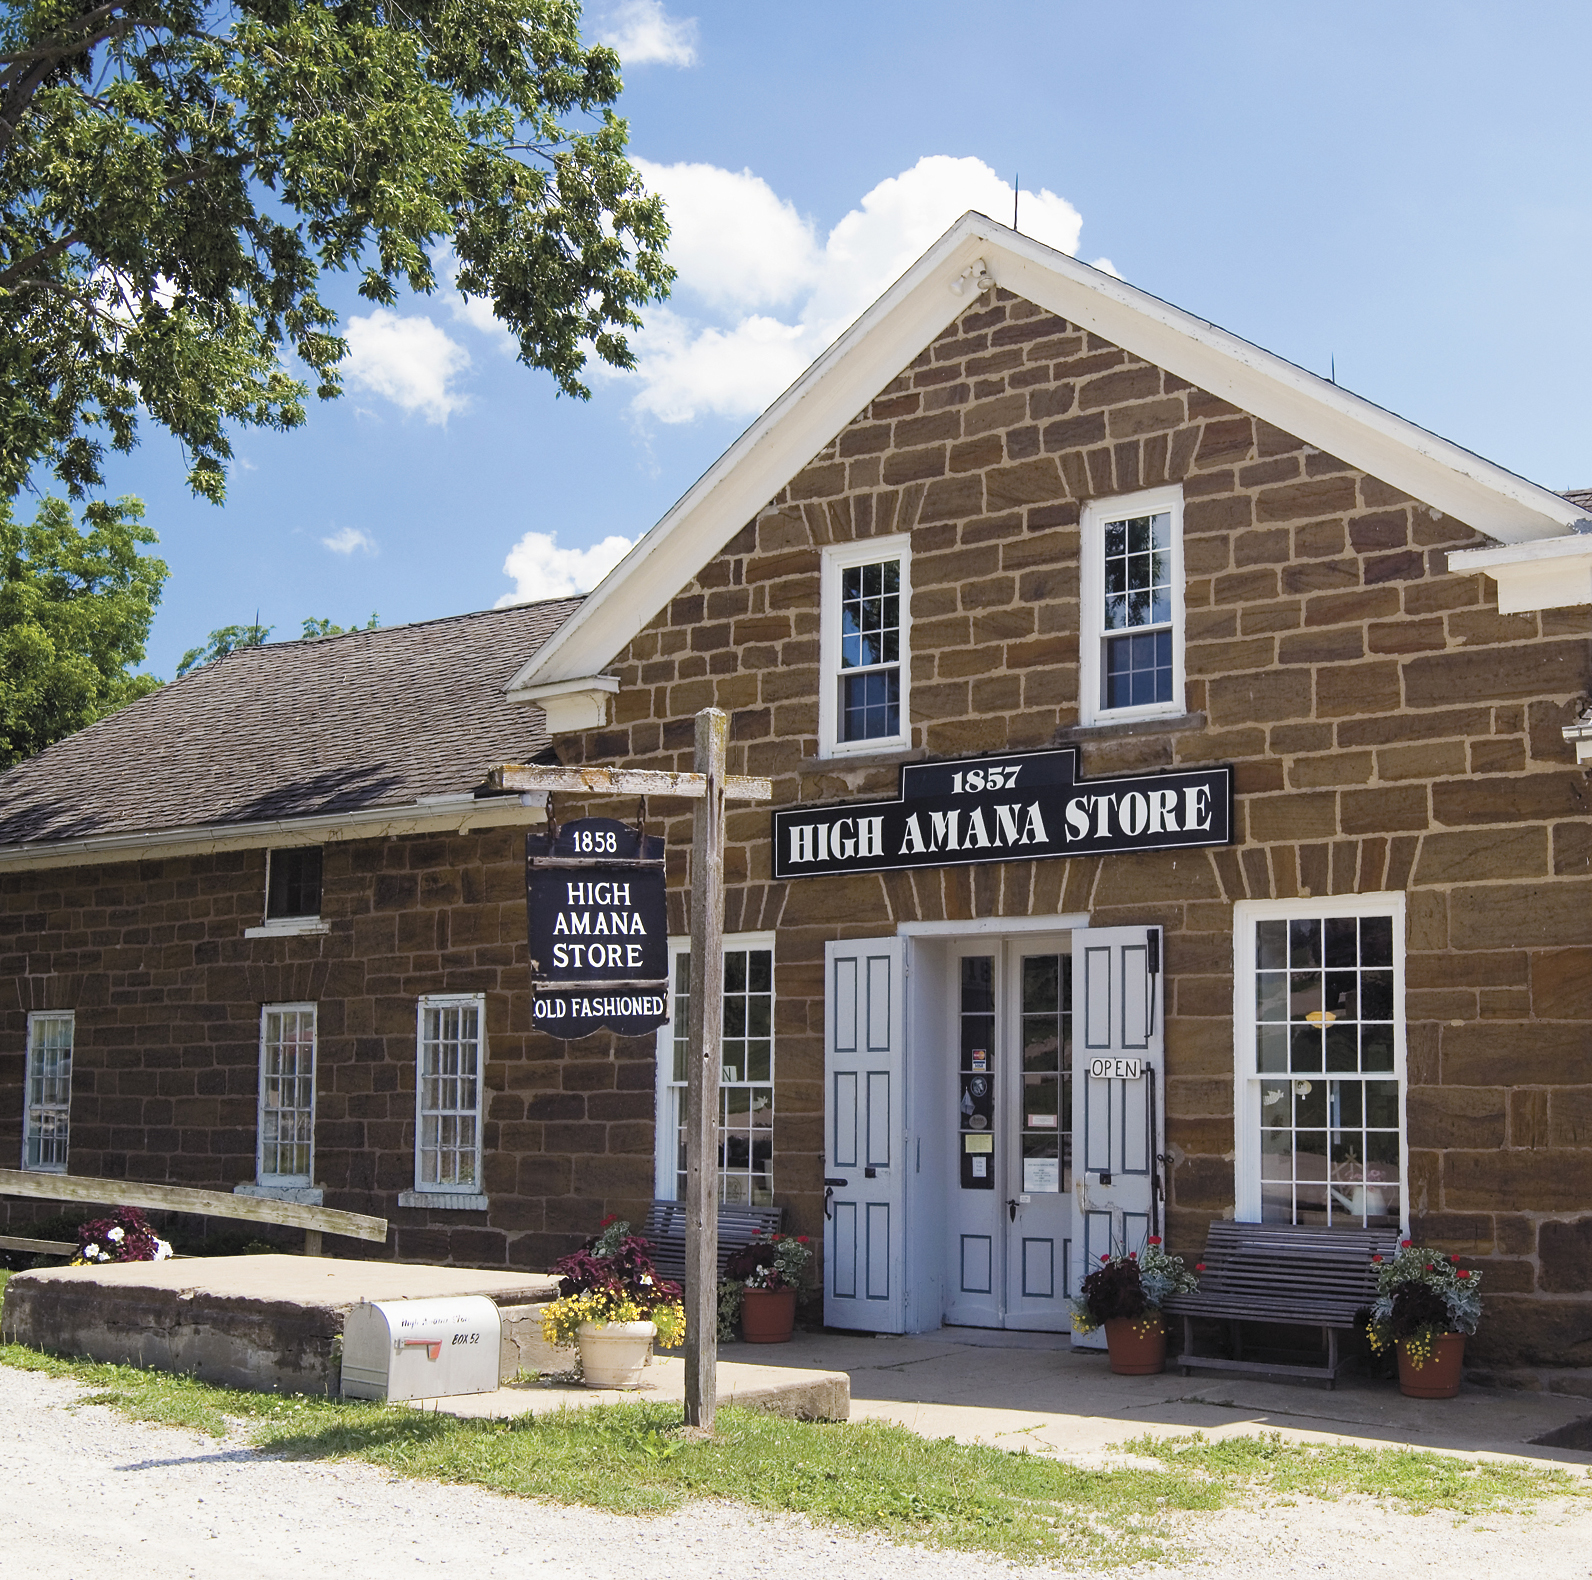 High Amana General Store. Photo Courtesy of Iowa Tourism Office.